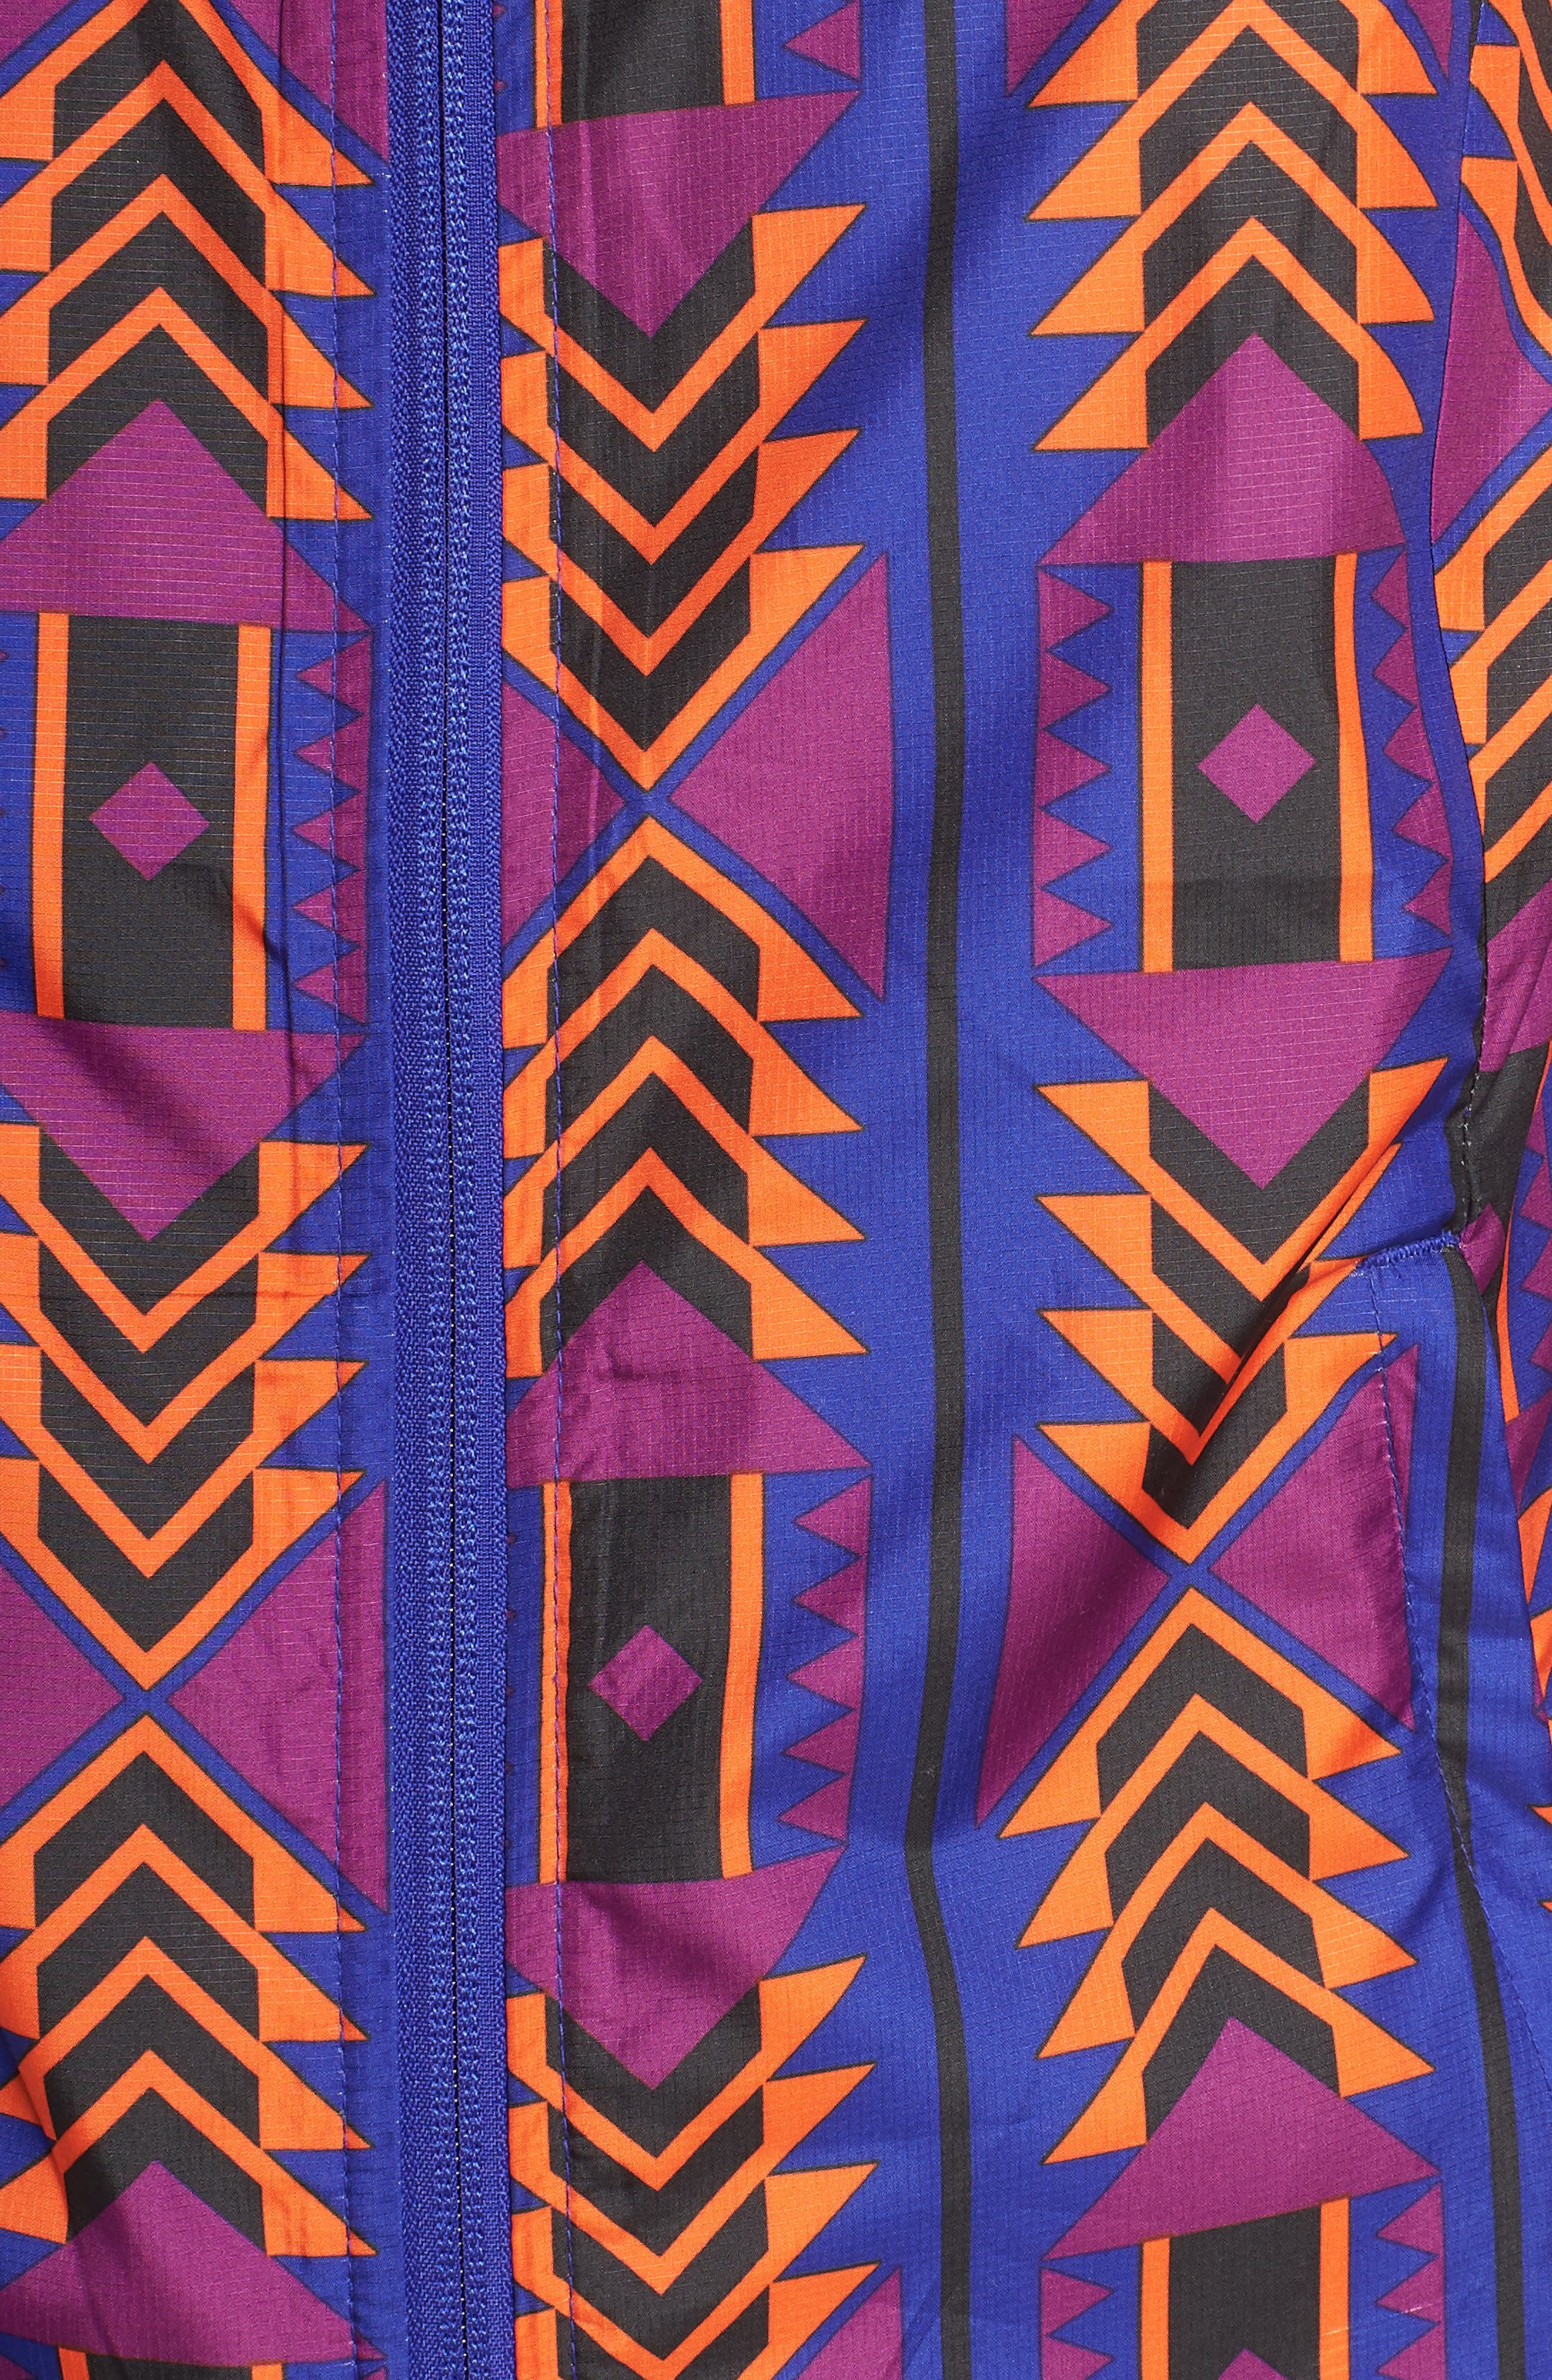 THE NORTH FACE, Print Cyclone 3.0 WindWall<sup>®</sup> Jacket, Alternate thumbnail 7, color, AZTEC BLUE 1992 RAGE PRINT